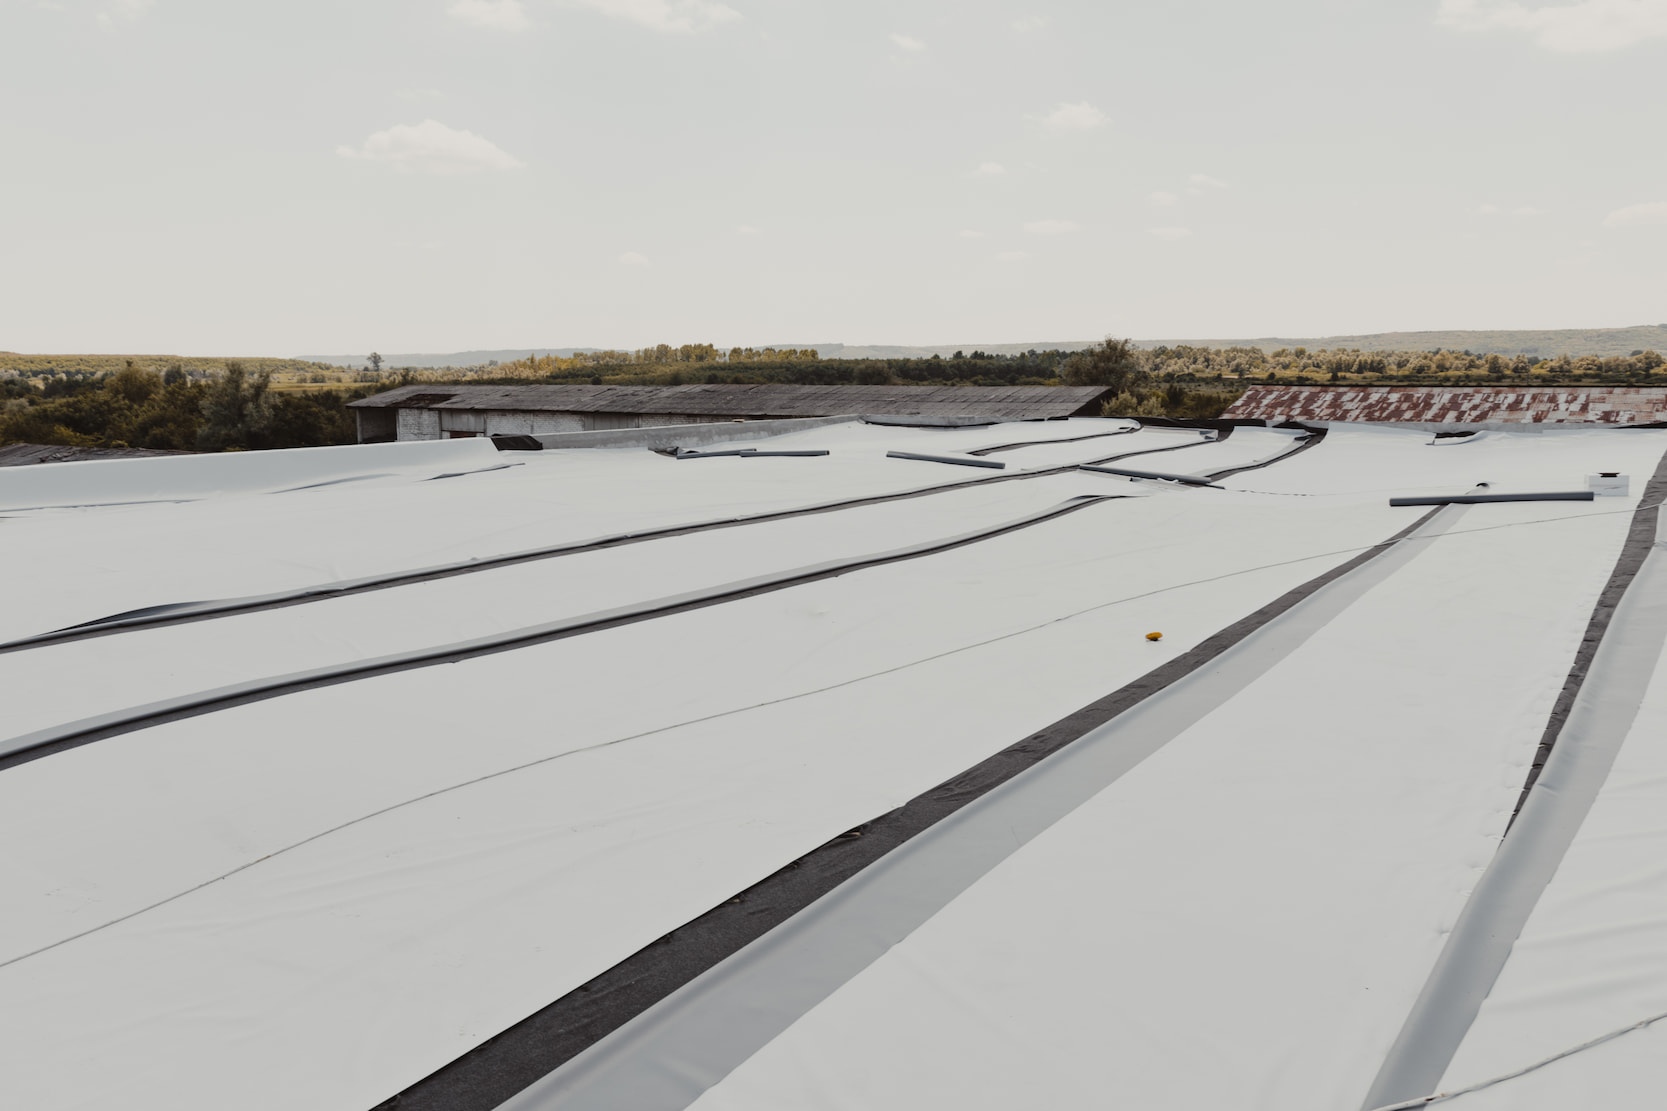 Commercial roofing companies Fort Collins CO - Severe Weather Roofing & Restoration